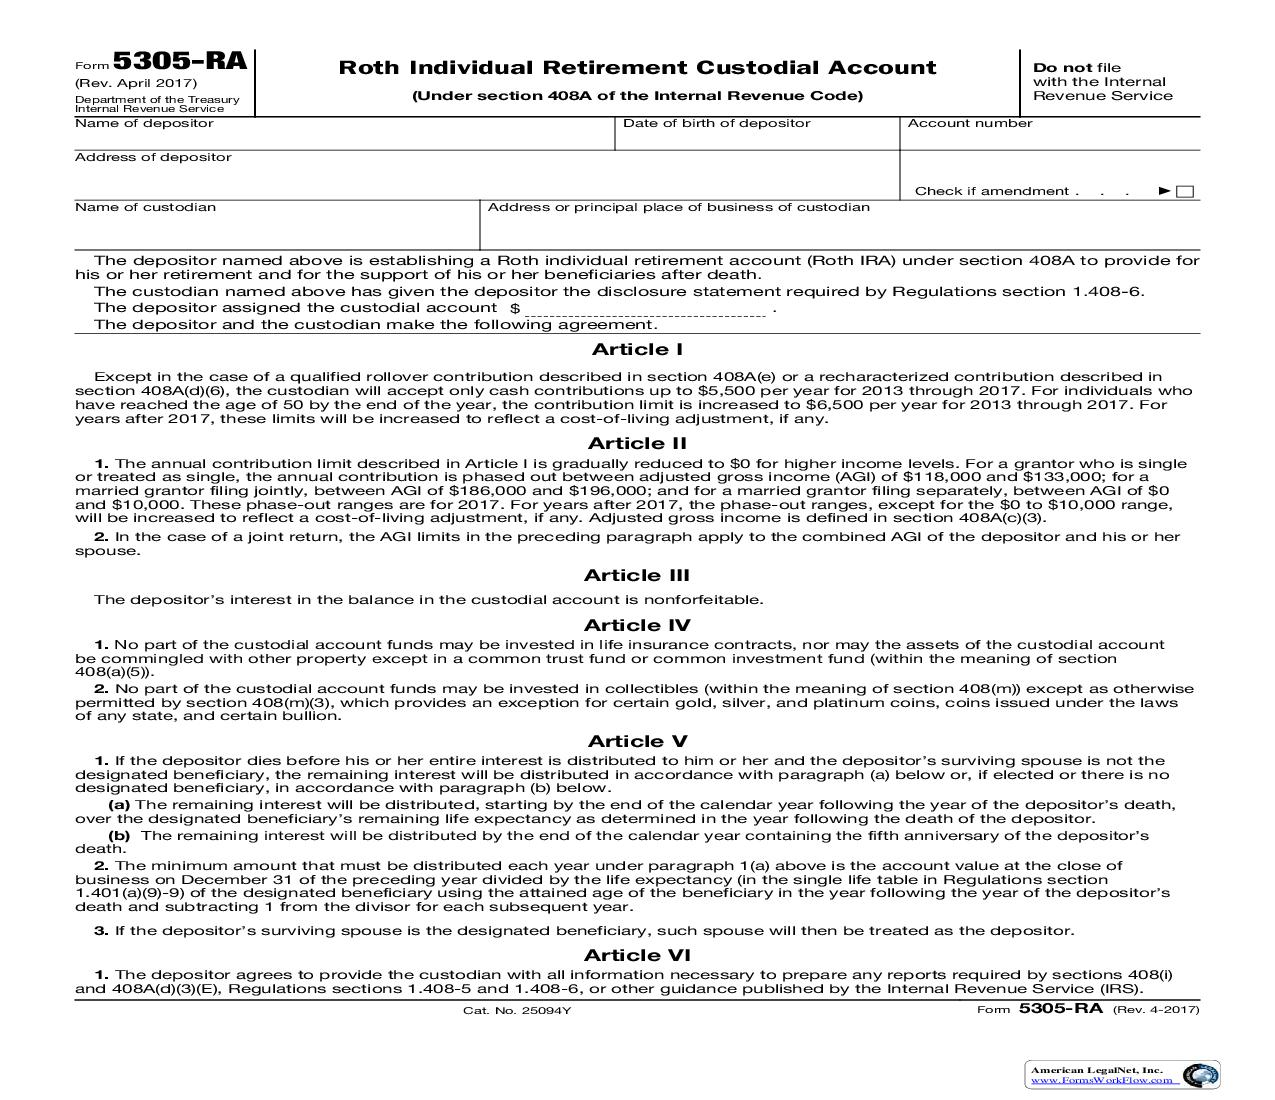 Form 5305-RA Roth Individual Retirement Custodial Account {5305-RA} | Pdf Fpdf Doc Docx | Official Federal Forms